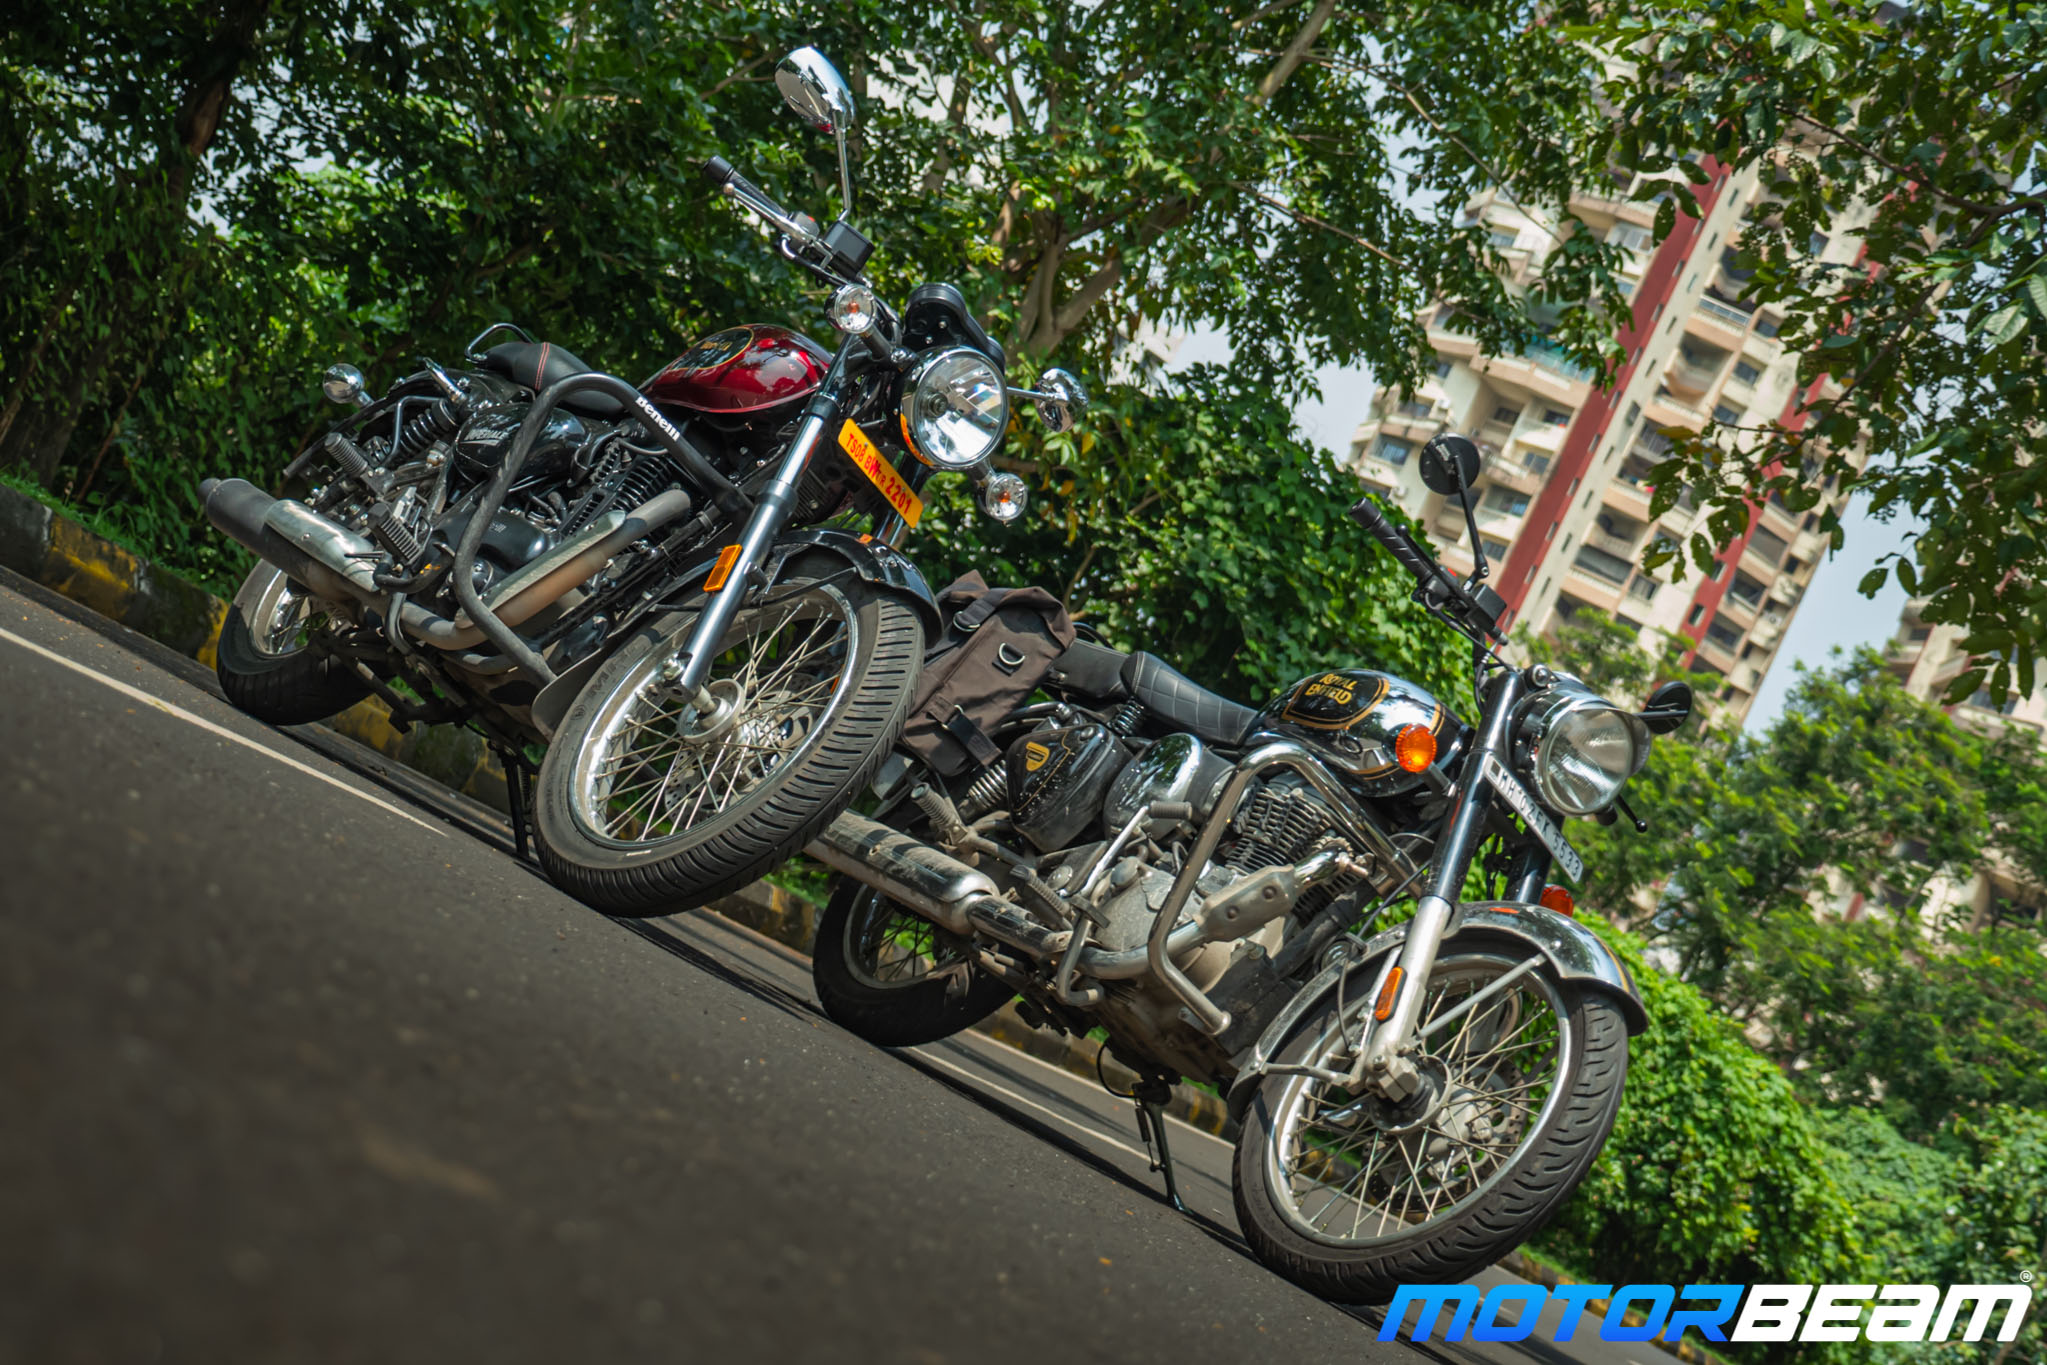 Benelli Imperiale 400 vs Royal Enfield Classic 350 Comparison Review 15